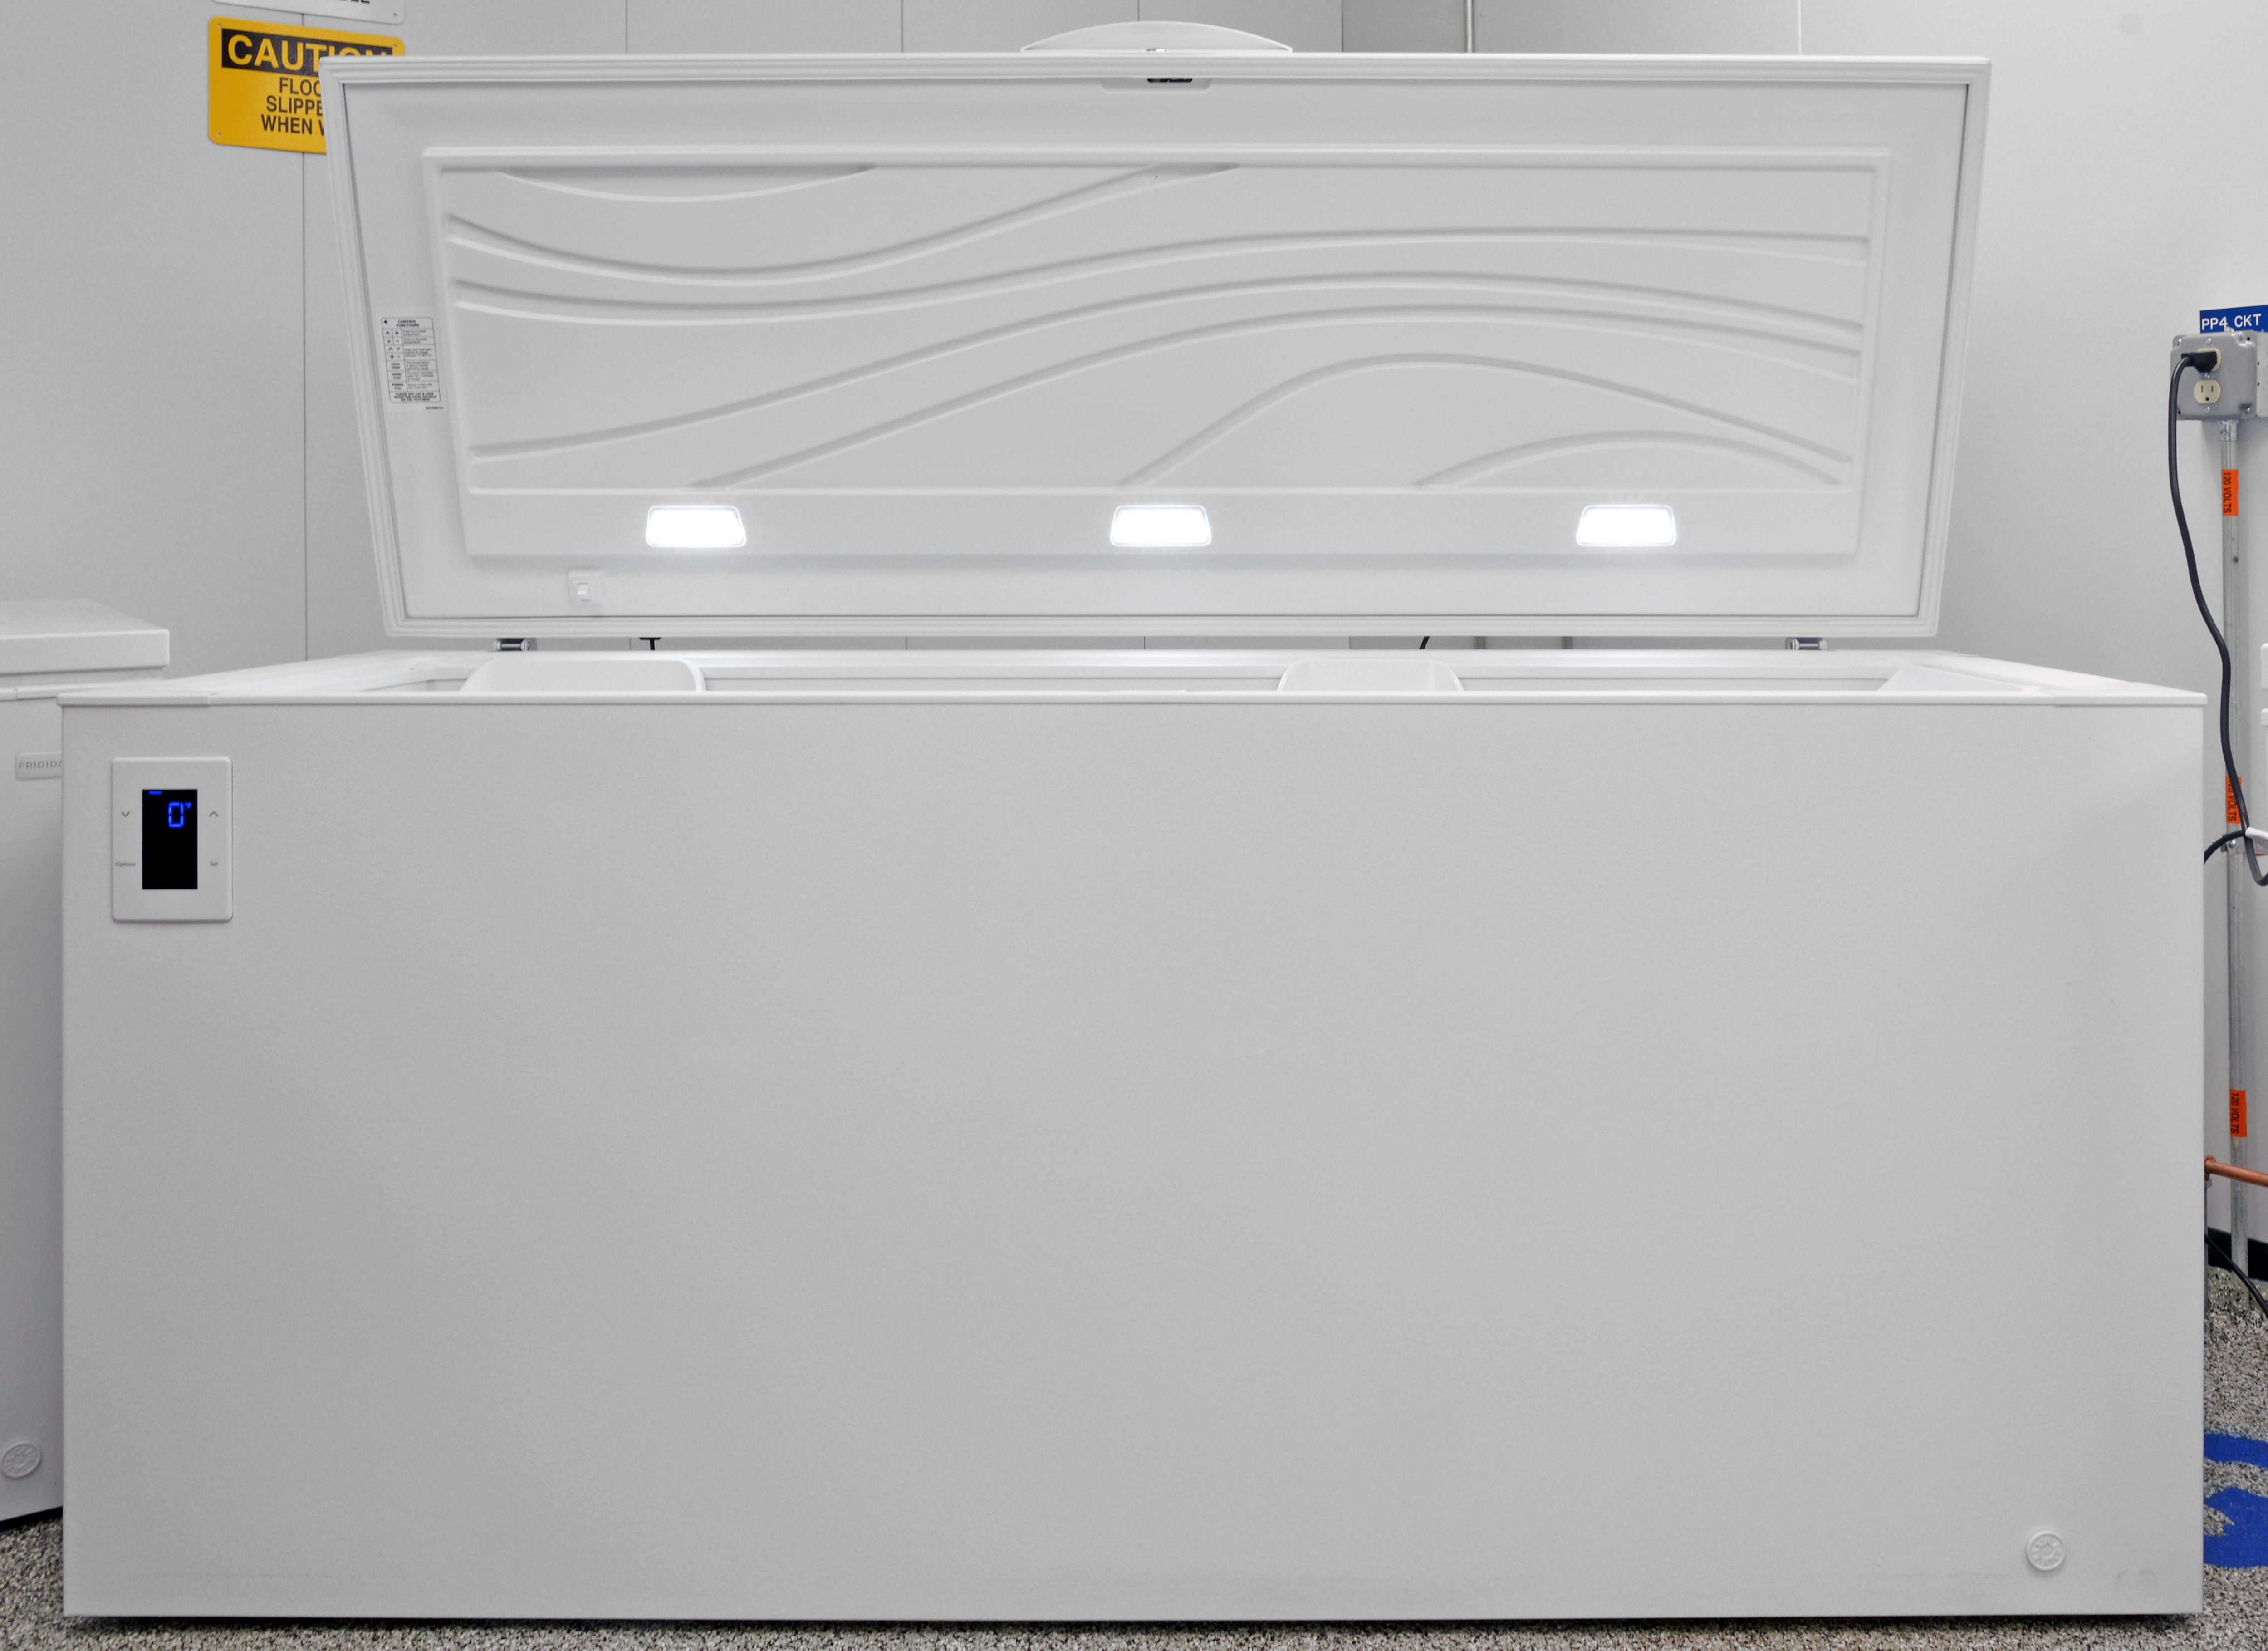 The Kenmore Elite 17202 chest freezer is so wide it includes three internal LED lights.